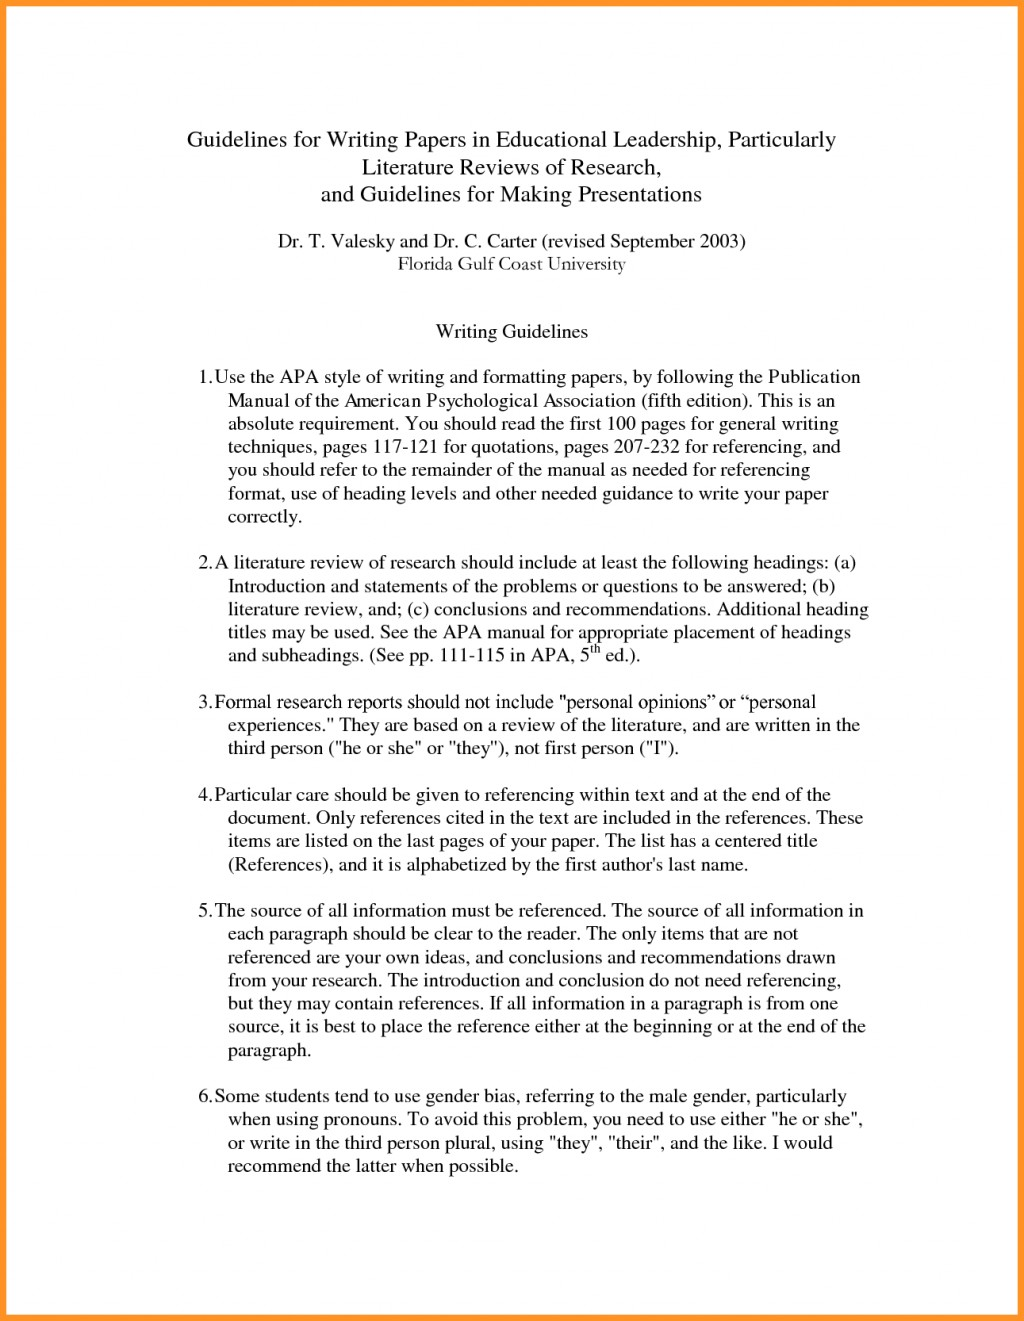 014 Literature Review Sample Apa 3 Research Unique Paper Large